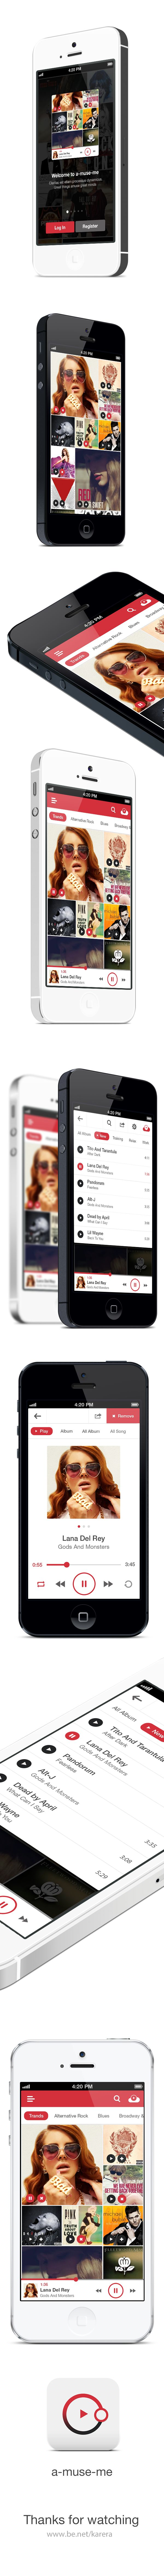 A-MUSE-ME. Music application by Alex Ds Karera, via Behance